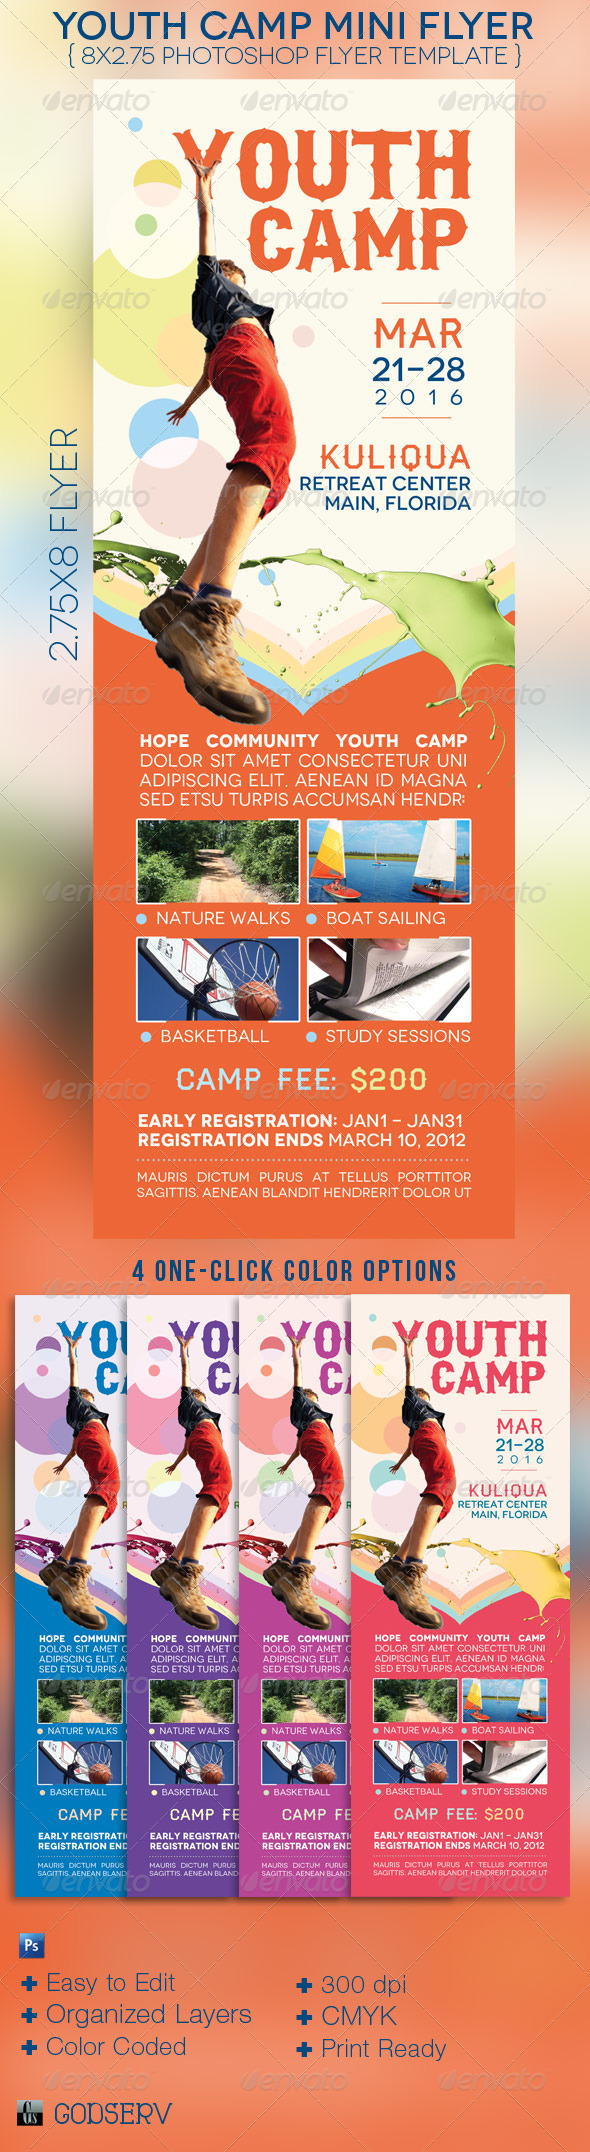 football camp sports training business card templates youth camp mini flyer template church flyers